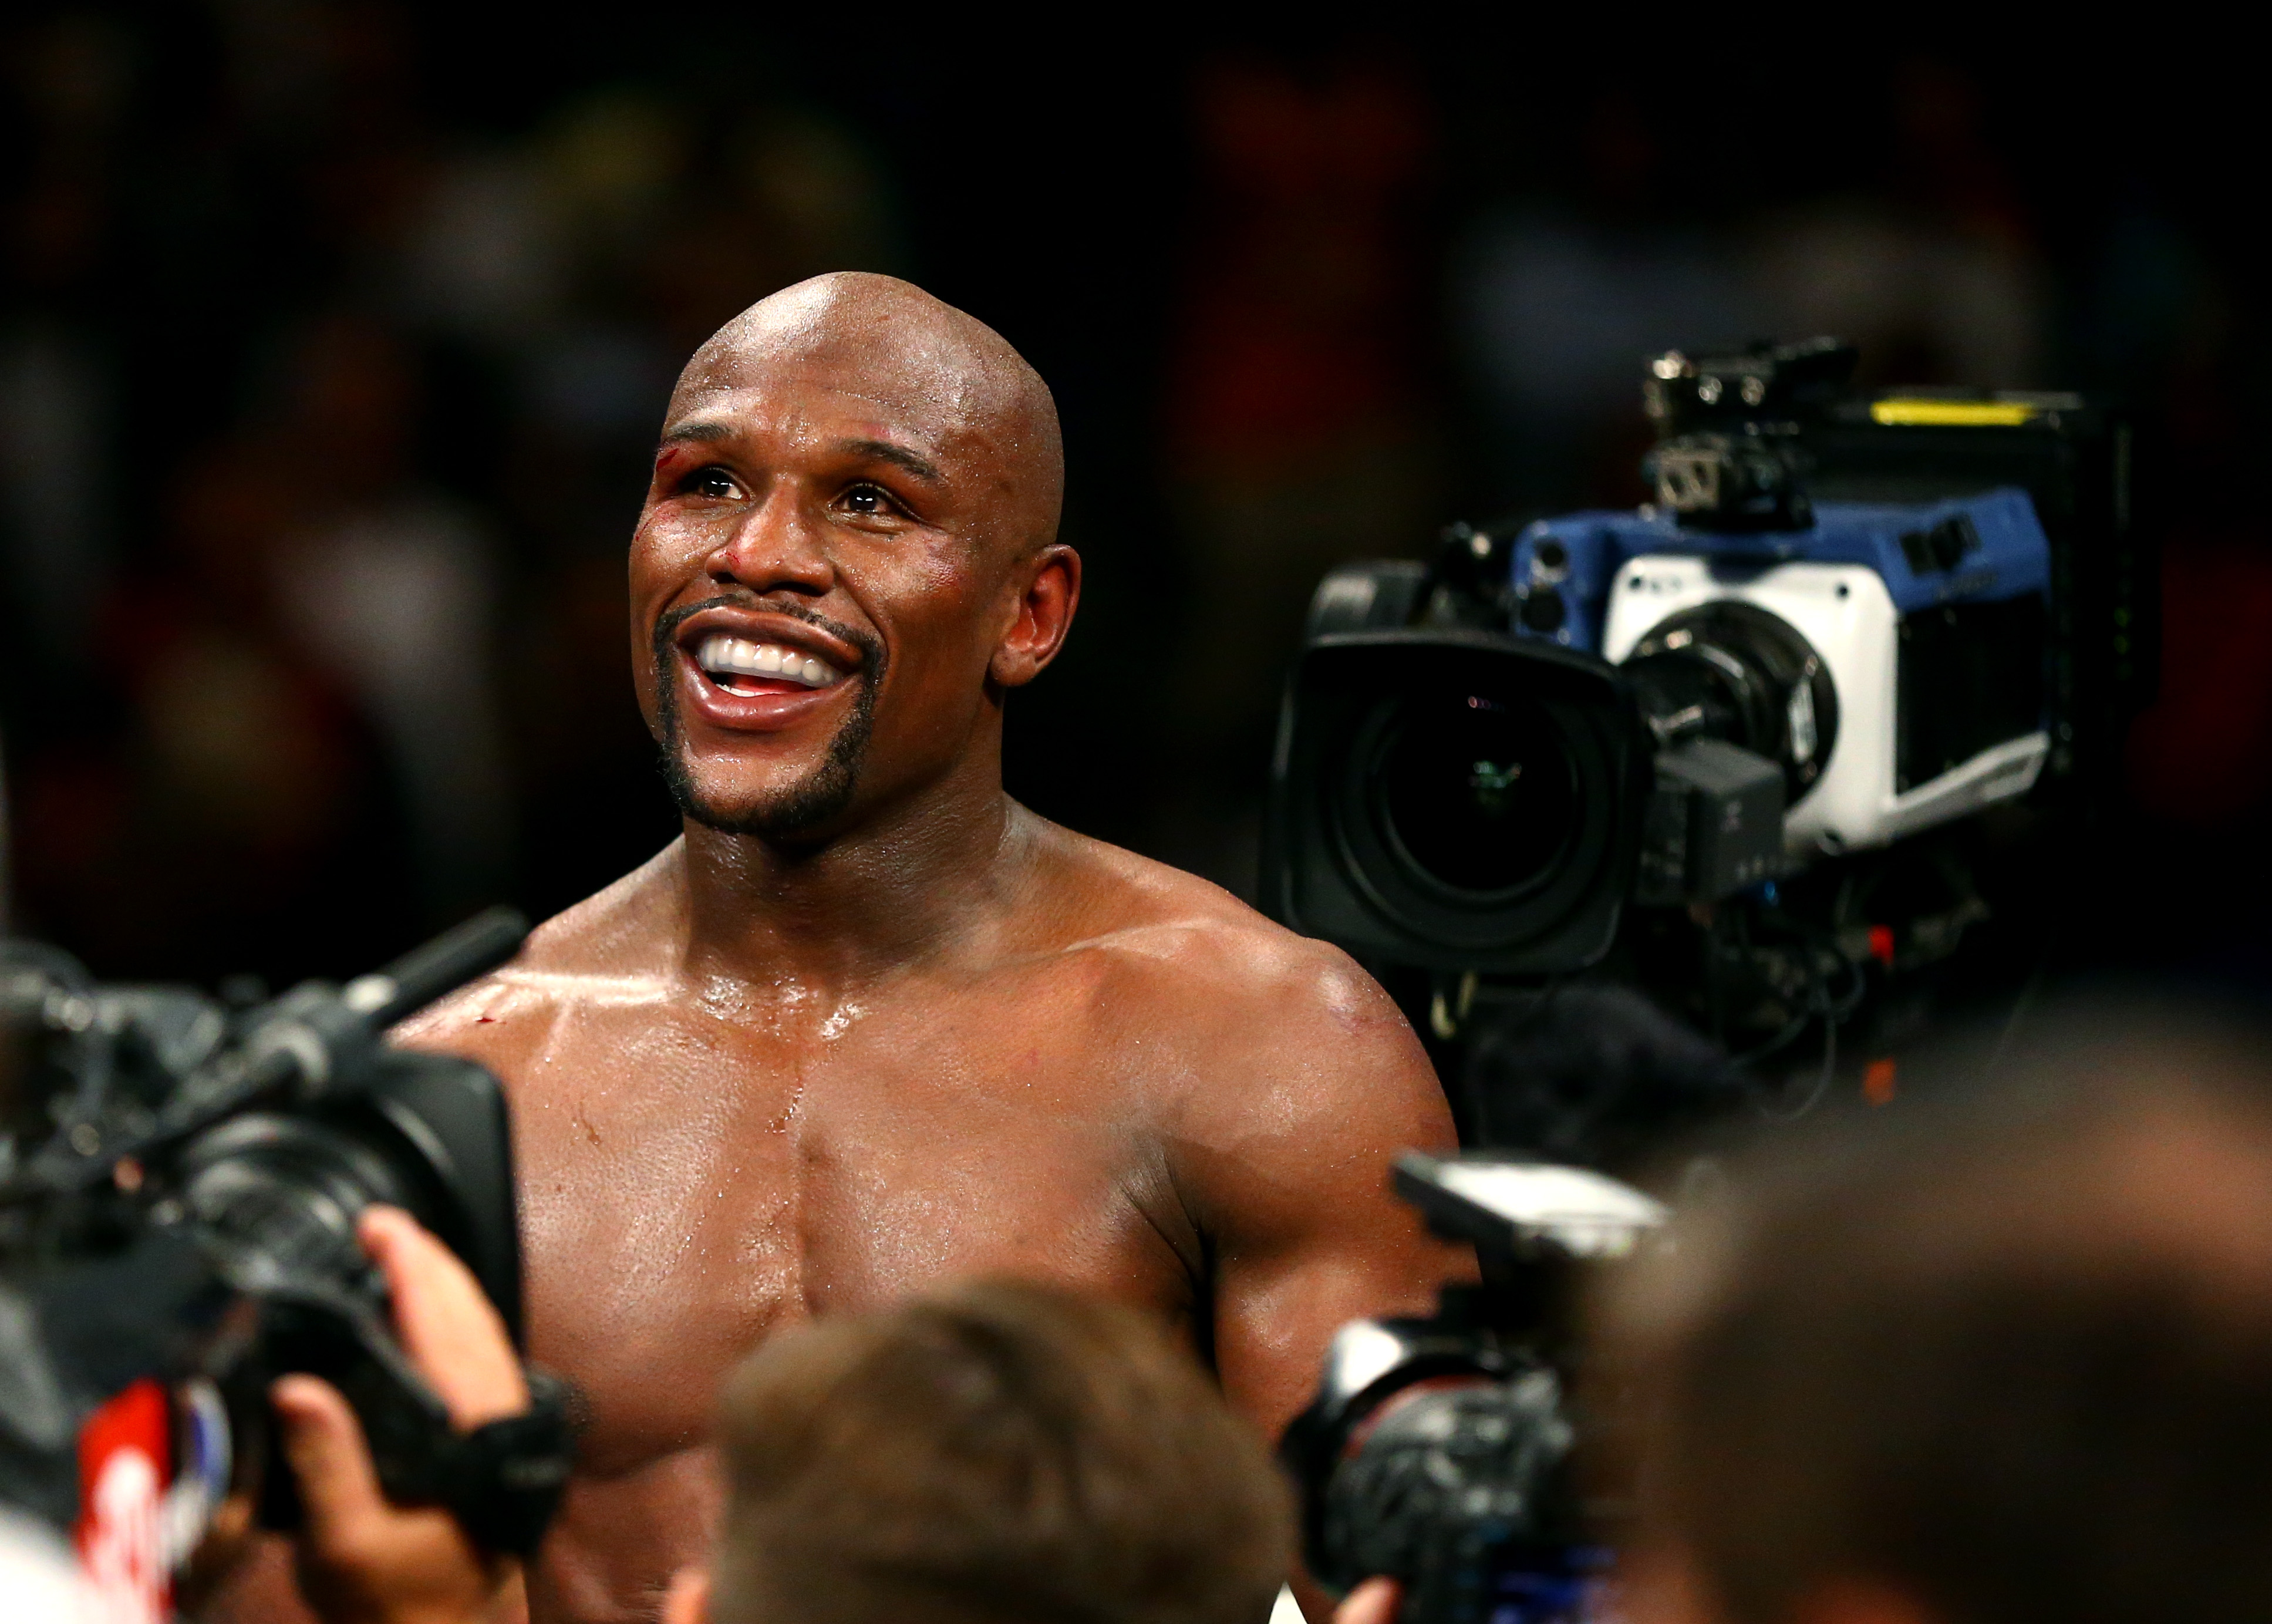 Floyd Mayweather responds to 50 Cent's reading challenge